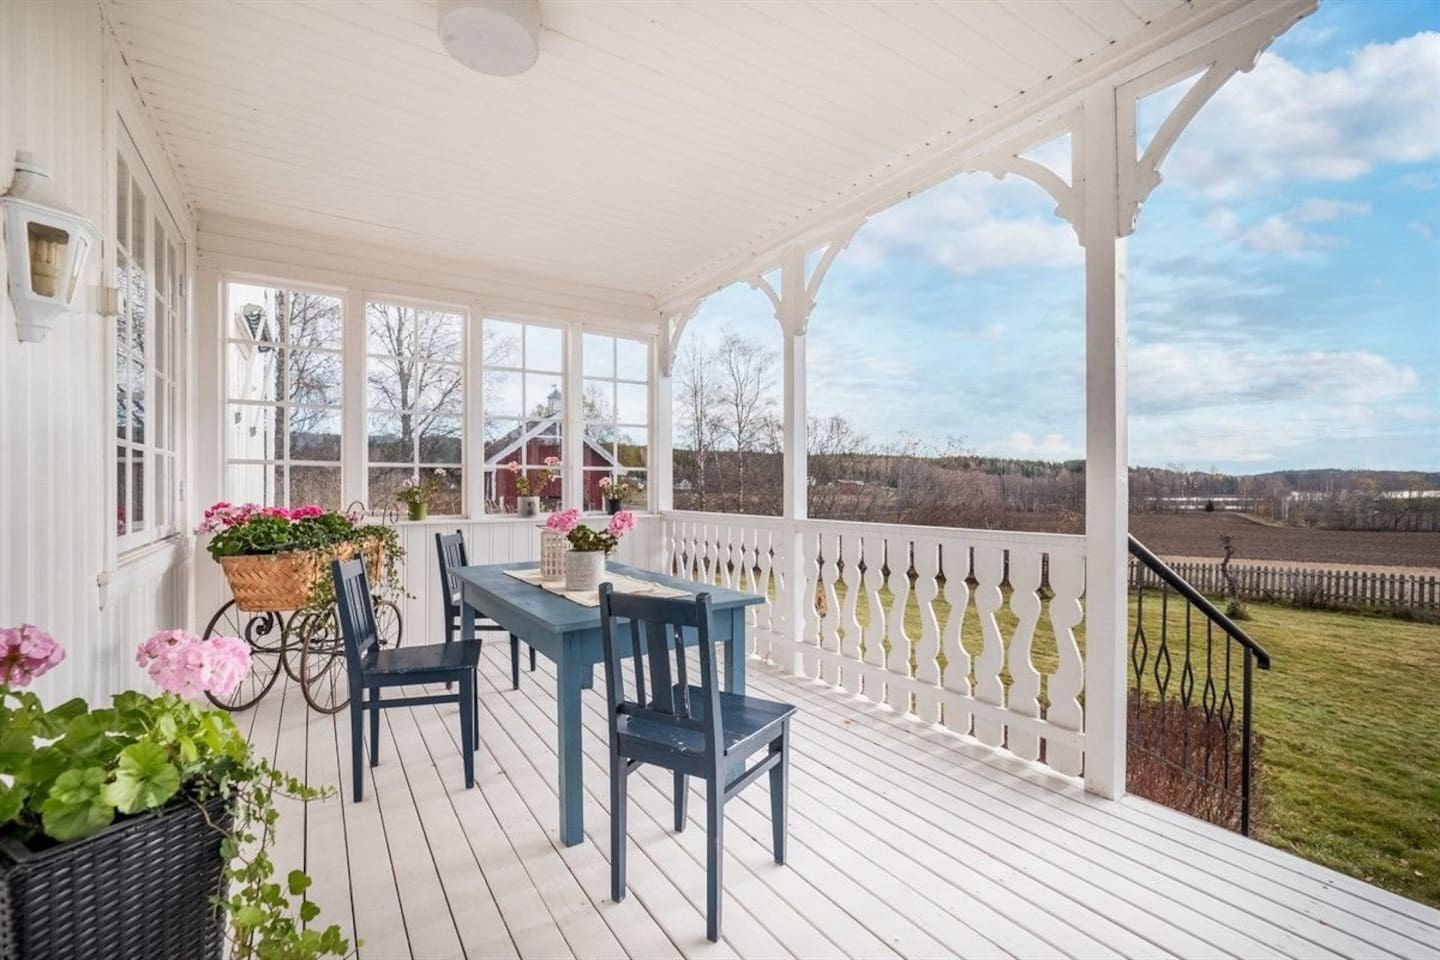 Veranda with view against south, in the direction of the garden and the lake.